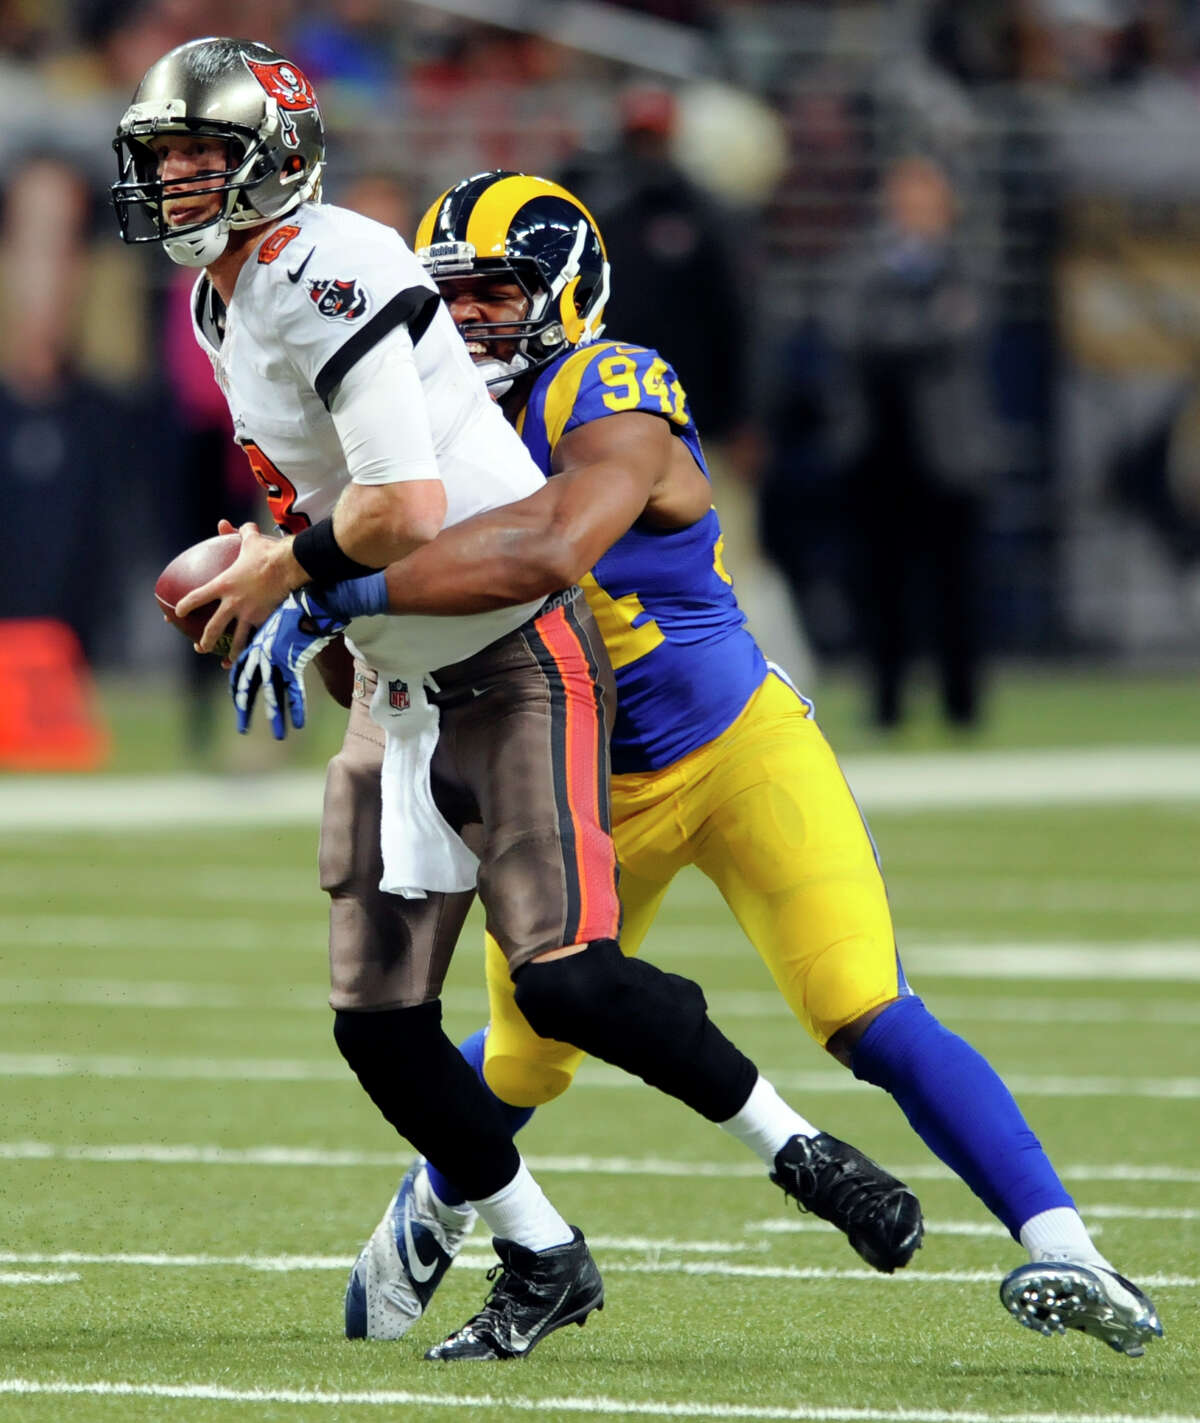 Tampa Bay Buccaneers quarterback Mike Glennon, left, is sacked by St. Louis Rams defensive end Robert Quinn for a 9-yard loss during the second quarter of an NFL football game on Sunday, Dec. 22, 2013, in St. Louis. (AP Photo/L.G. Patterson)